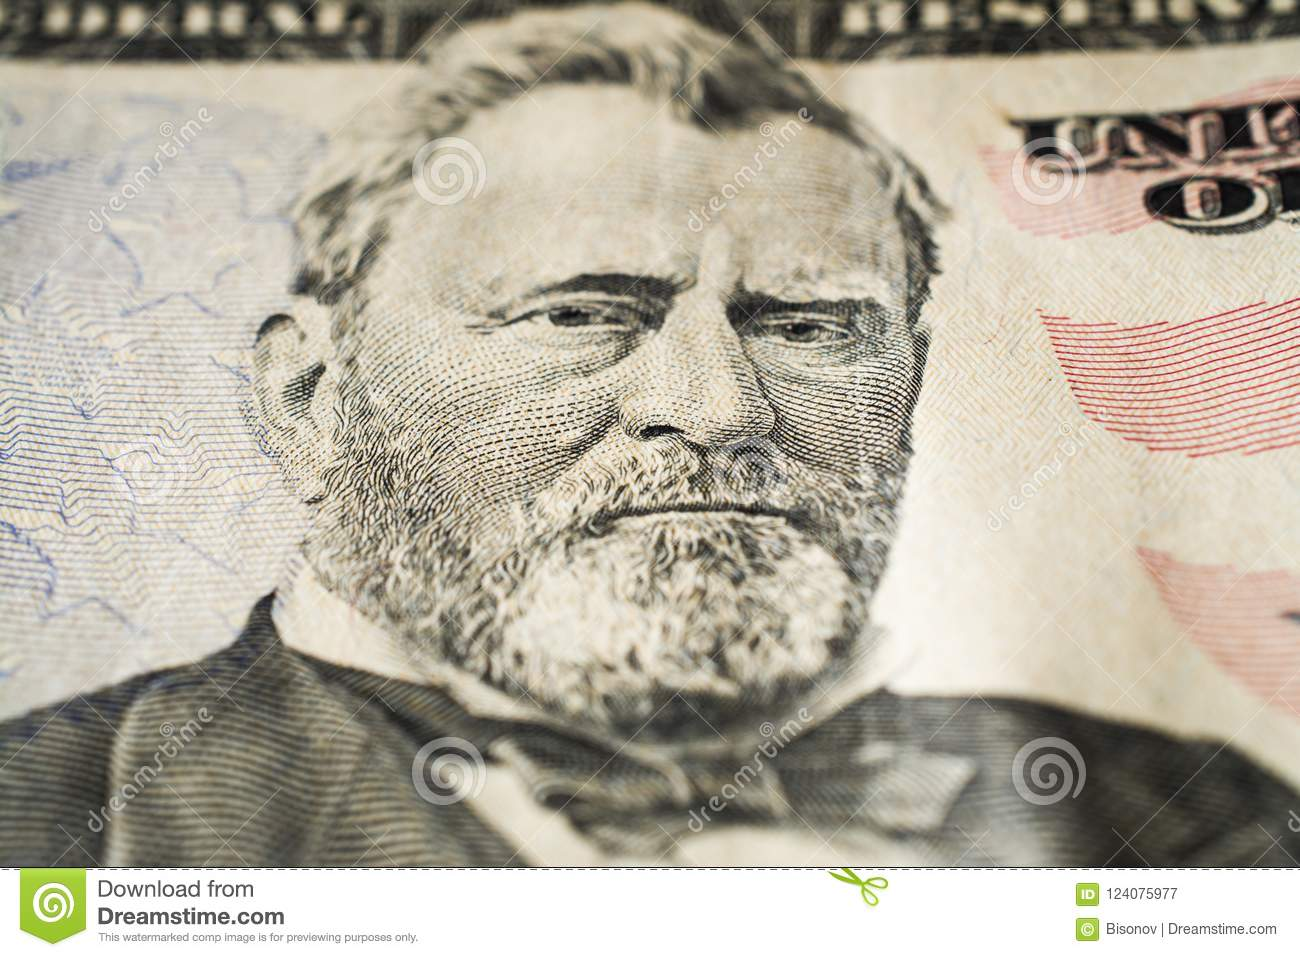 US president Ulysses Grant portrait on fifty dollar bill extreme macro, 50 usd